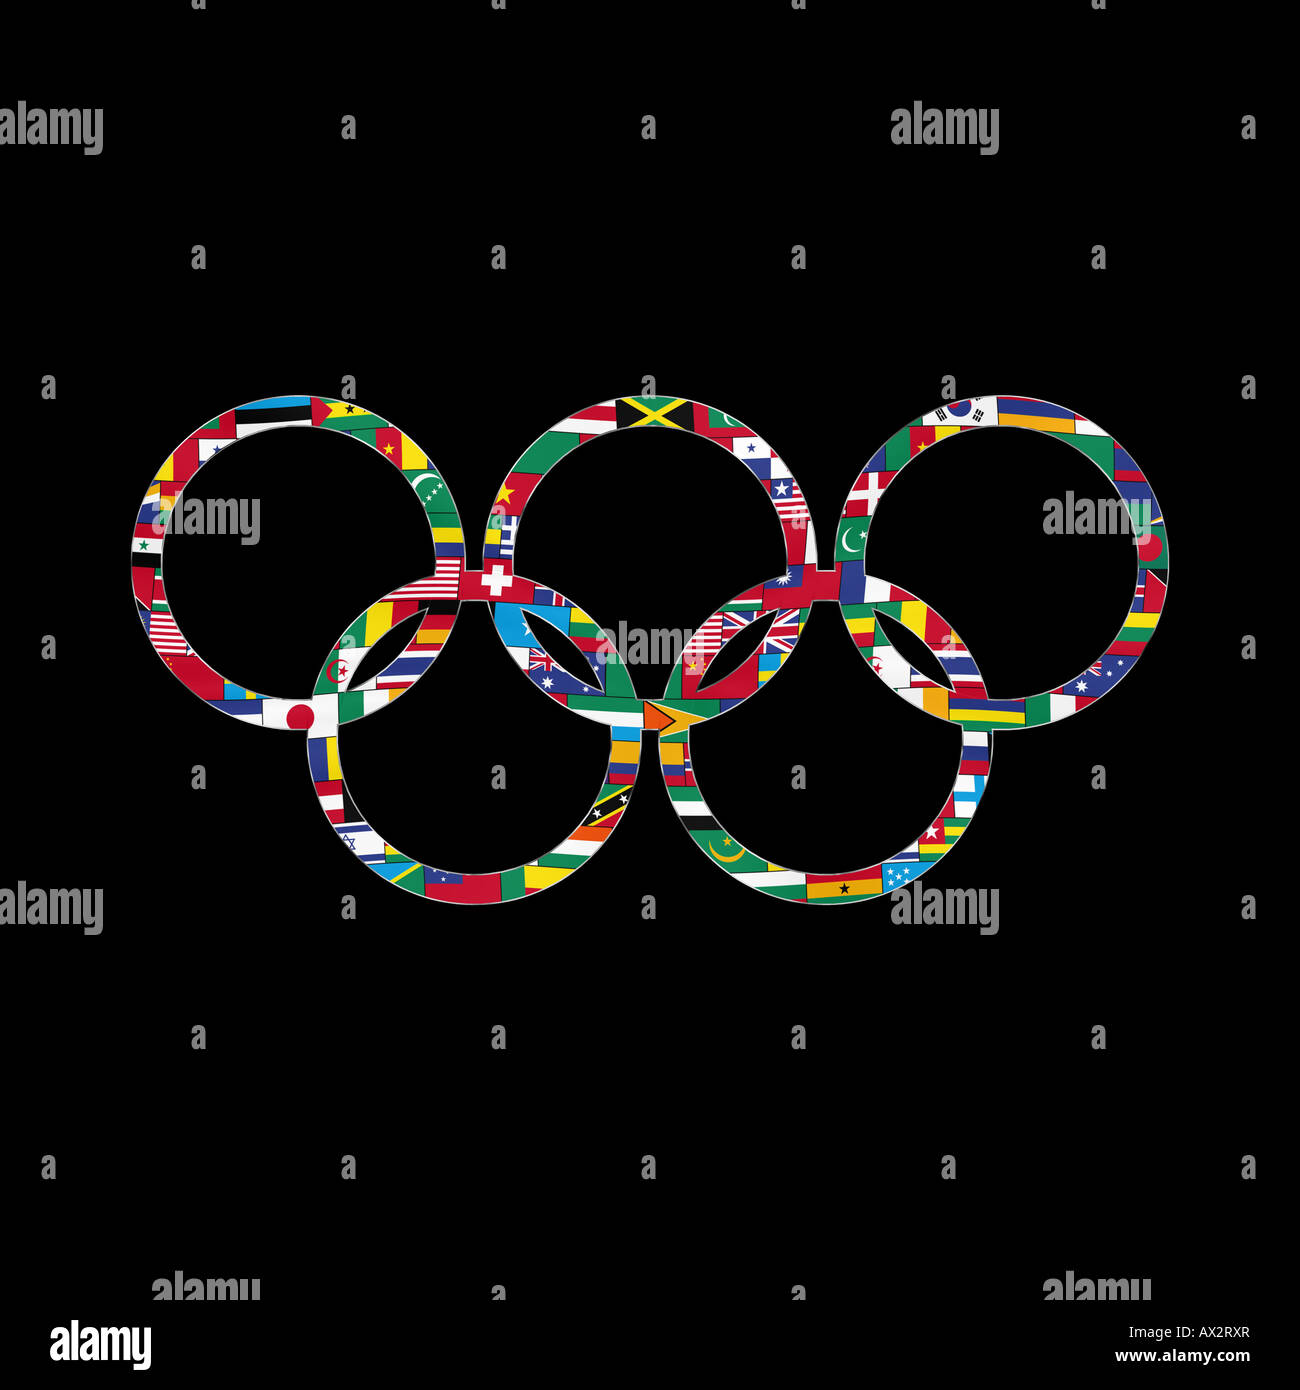 Flag pattern filled olympic rings against a black background - Stock Image